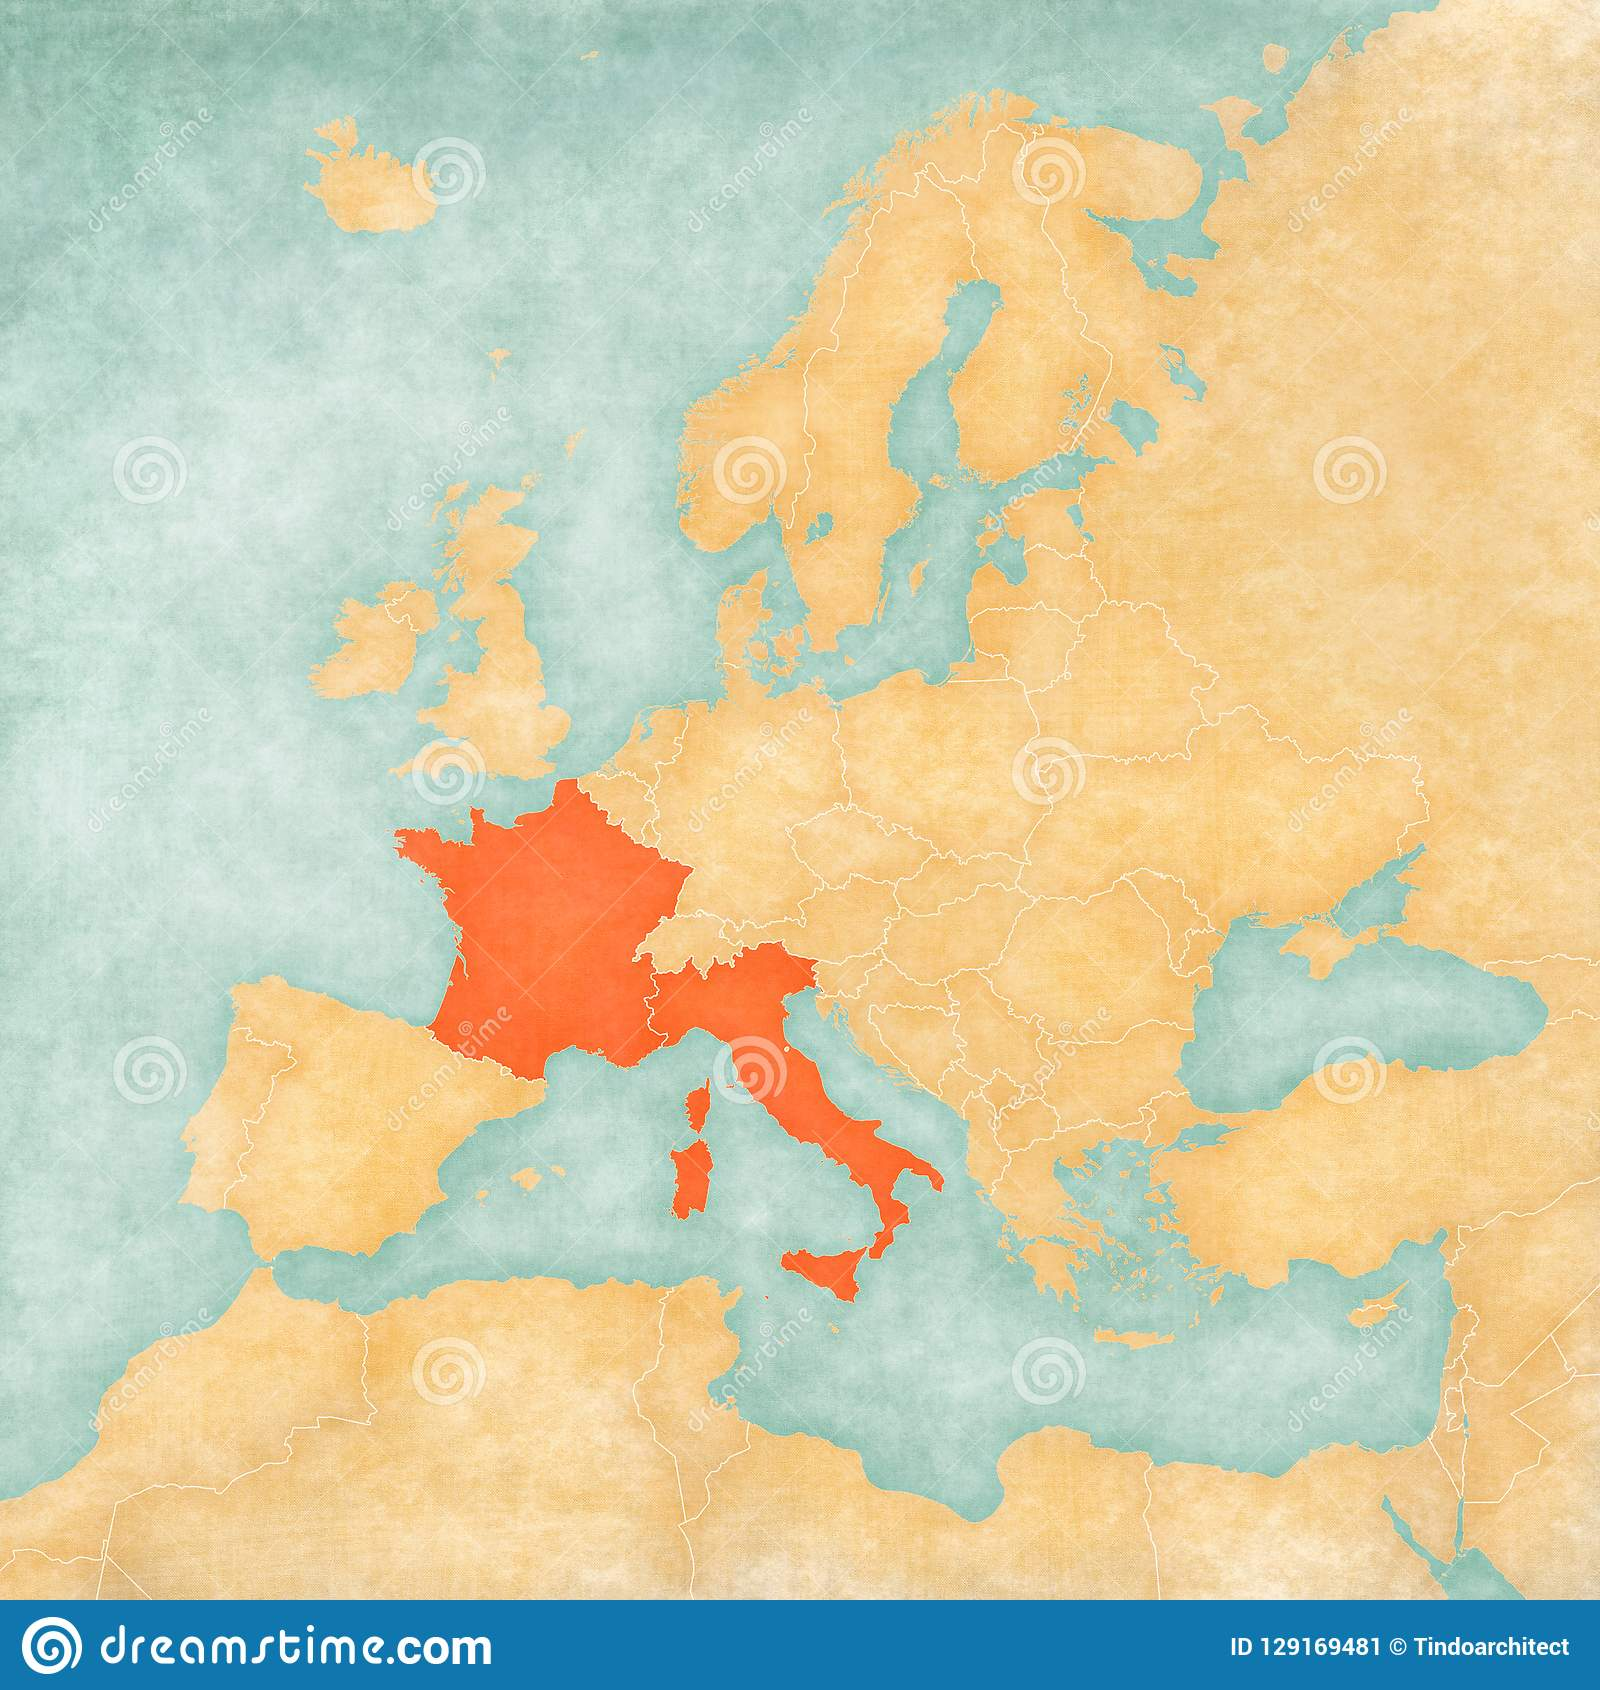 Mainland Europe Map.Map Of Europe France And Italy Stock Illustration Illustration